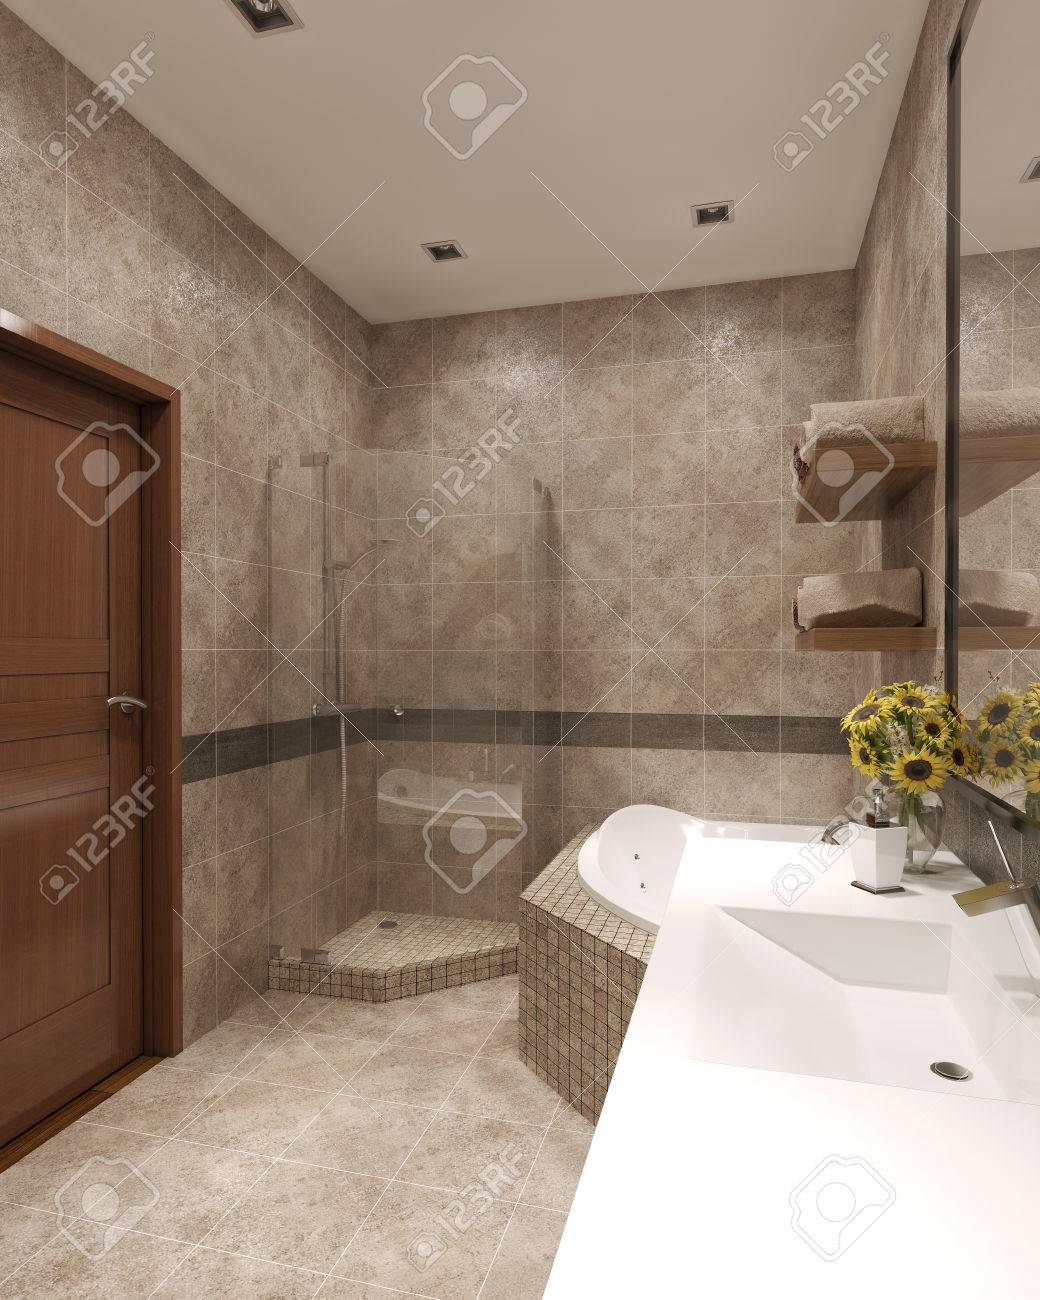 High Tech Bathroom High Tech Bathroom Interior 3d Render Stock Photo Picture And